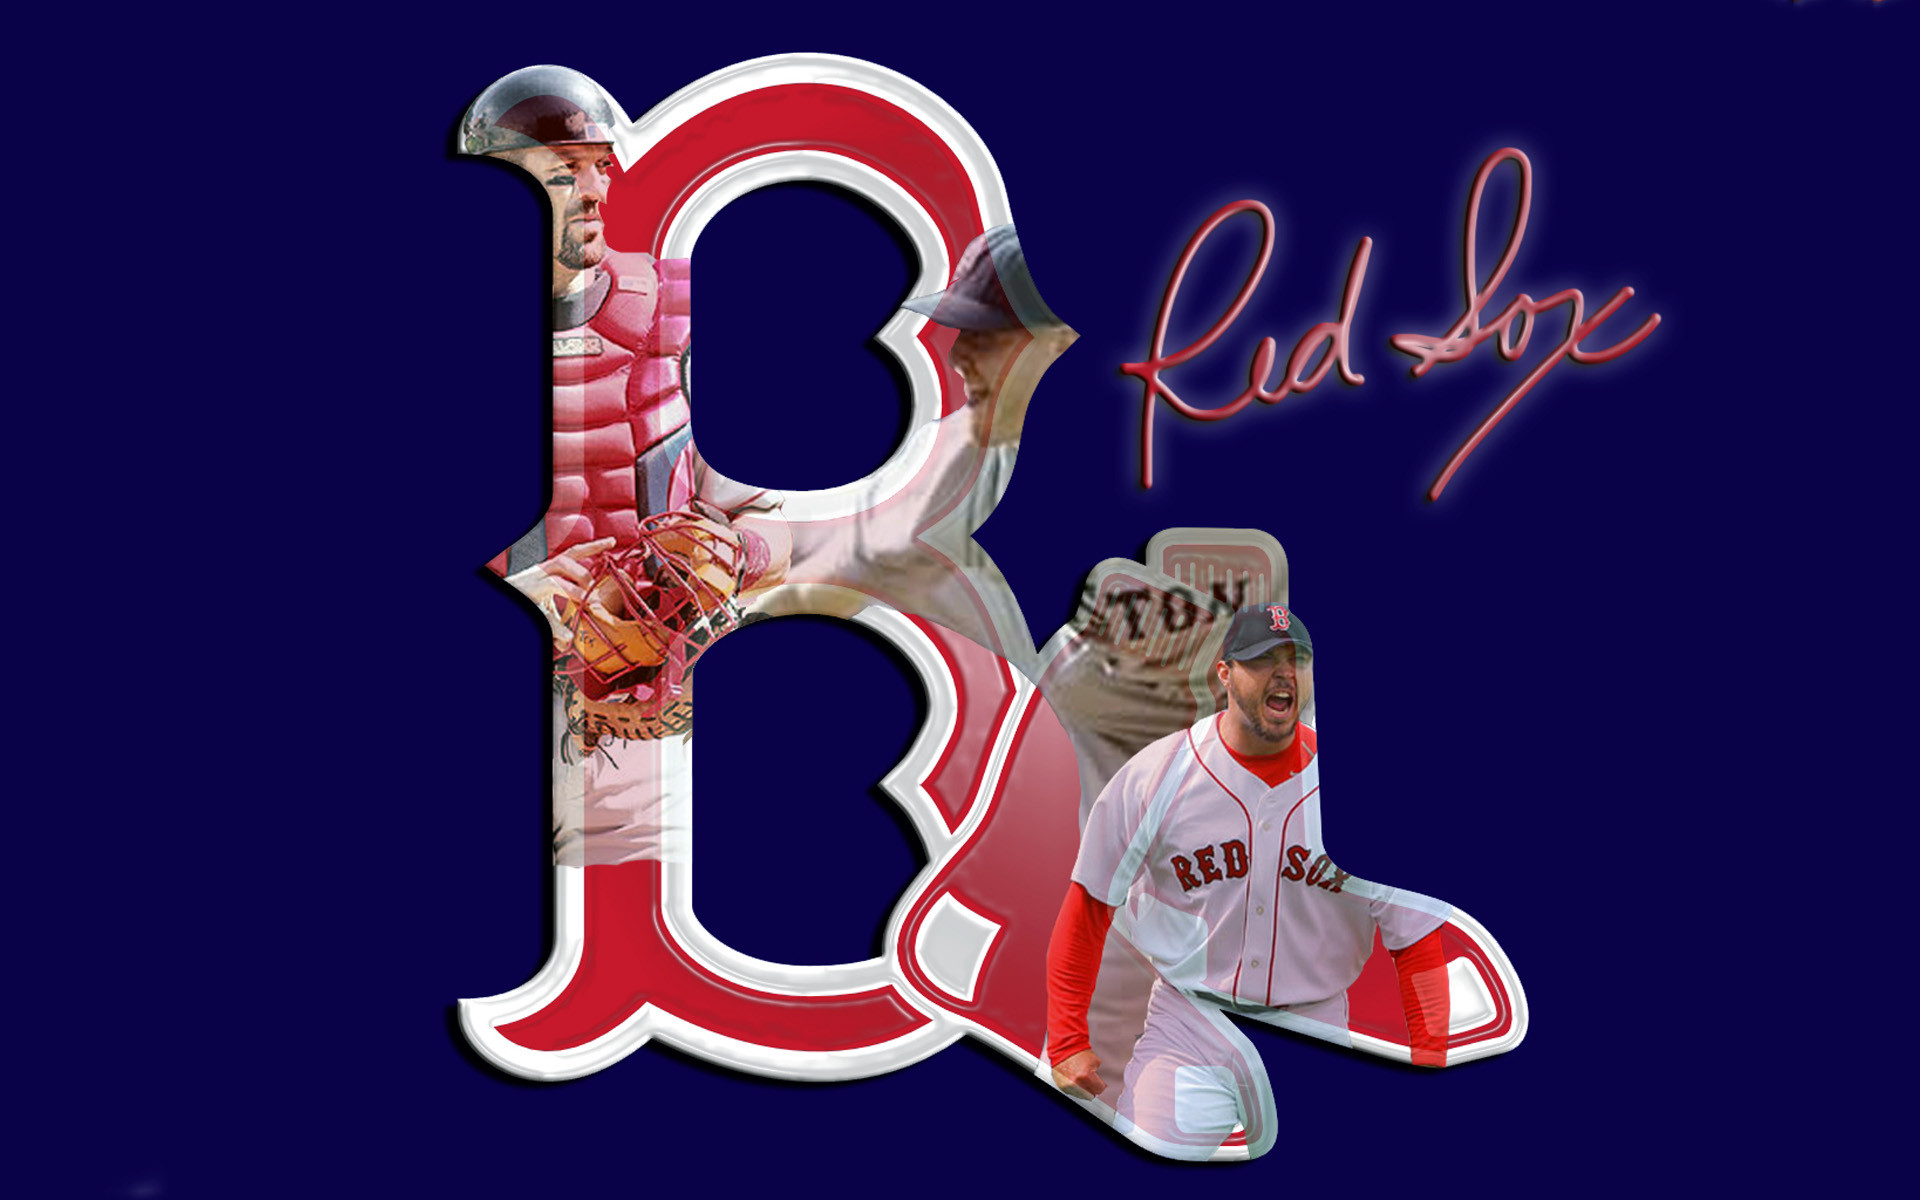 1920x1200 - Boston Red Sox Wallpaper Screensavers 19